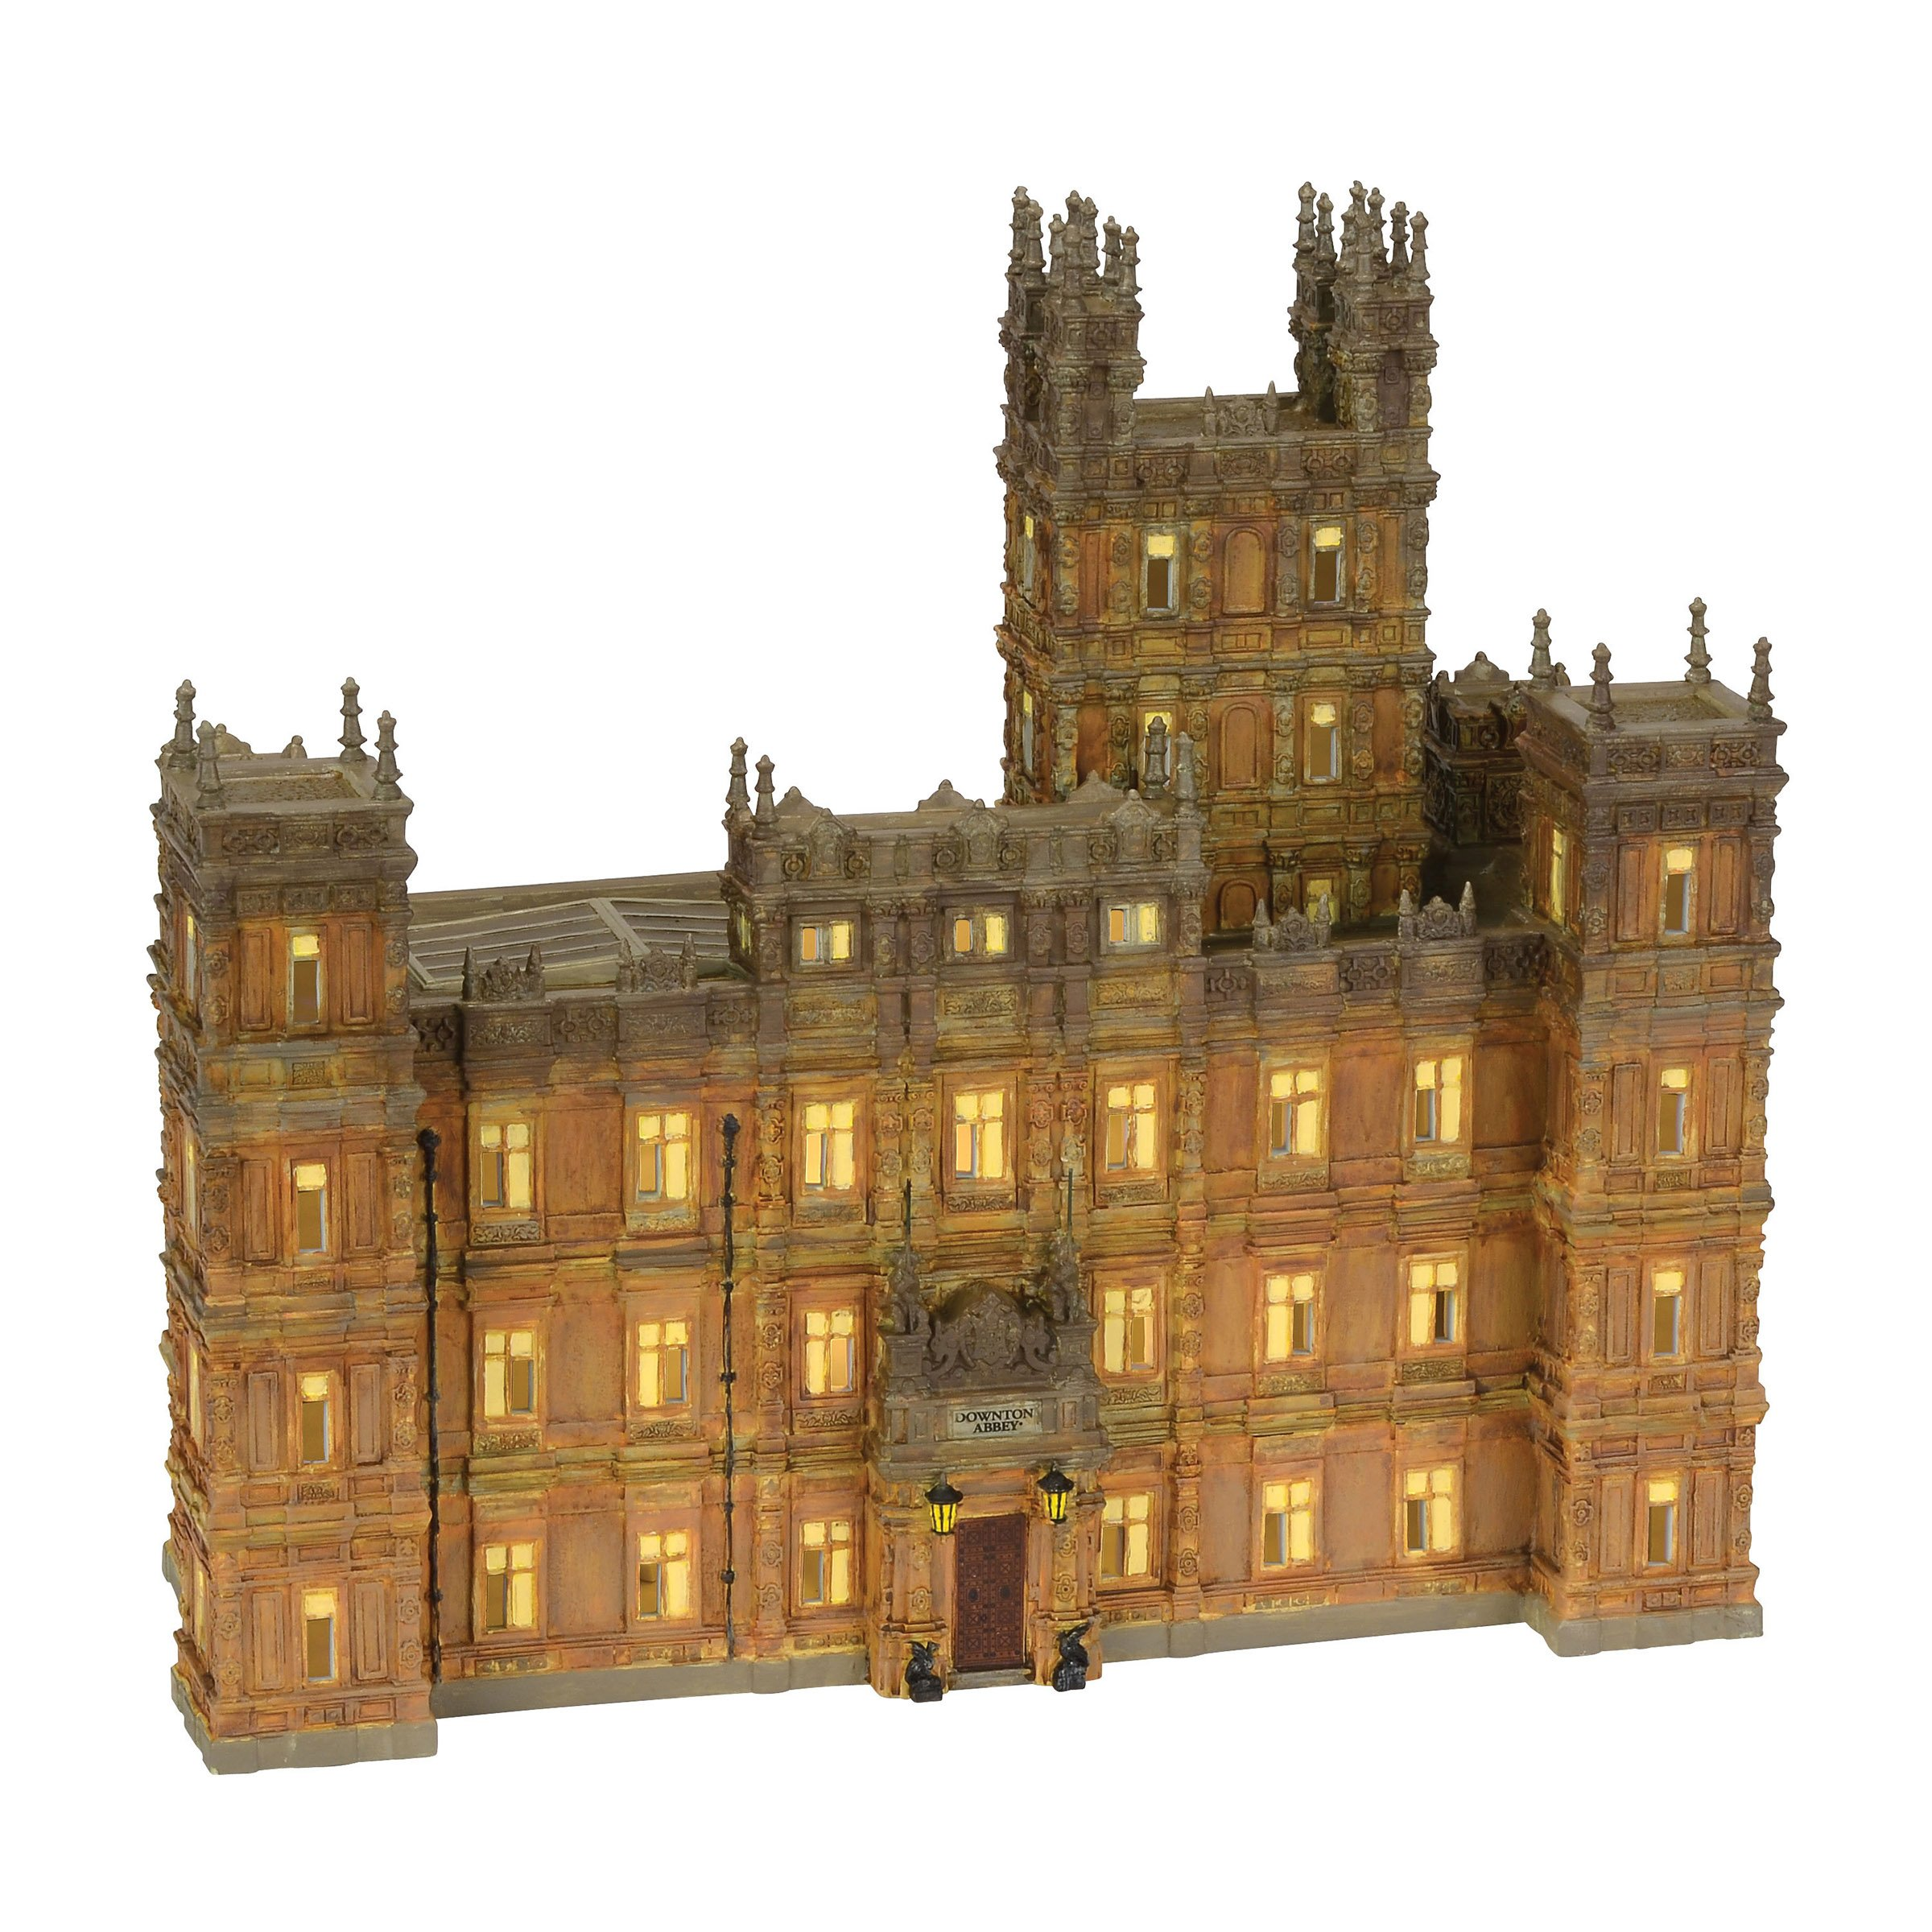 Department 56 Downton Abbey Lit House, 11.42 inch by Department 56